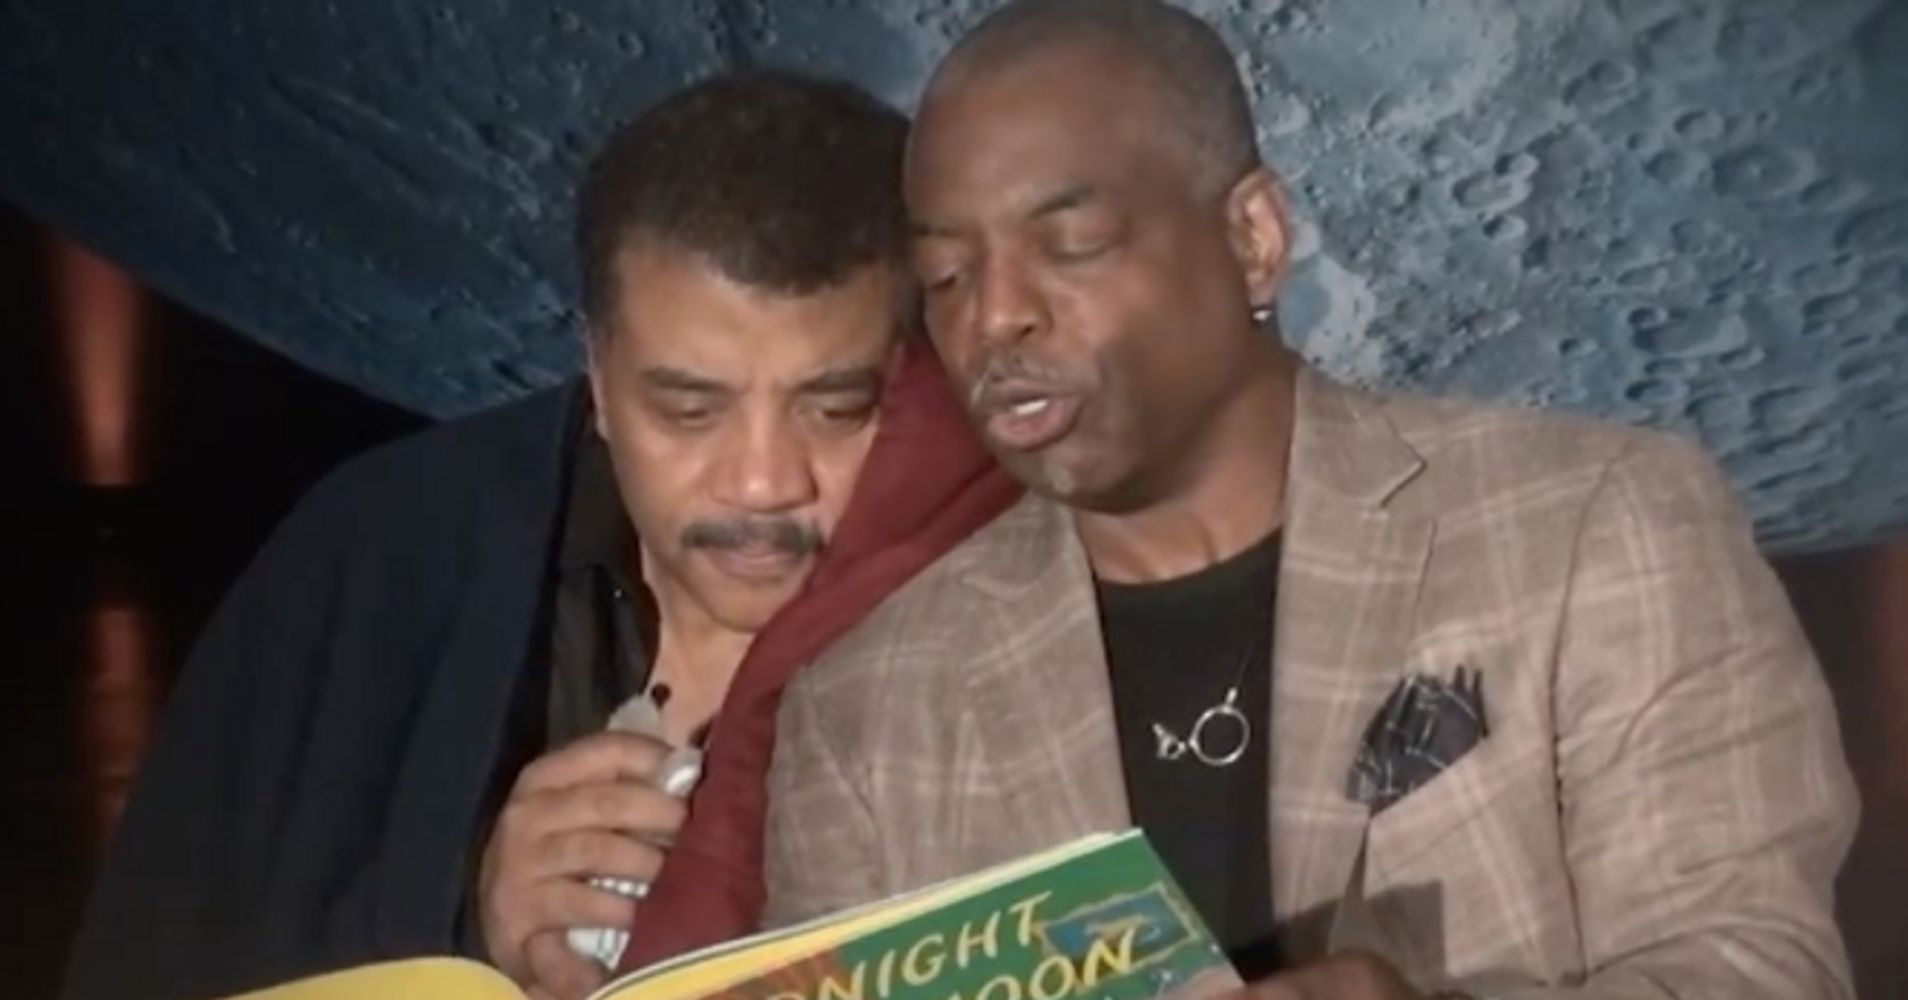 LeVar Burton Reading 'Goodnight Moon' To Neil DeGrasse Tyson Is Just Awesome